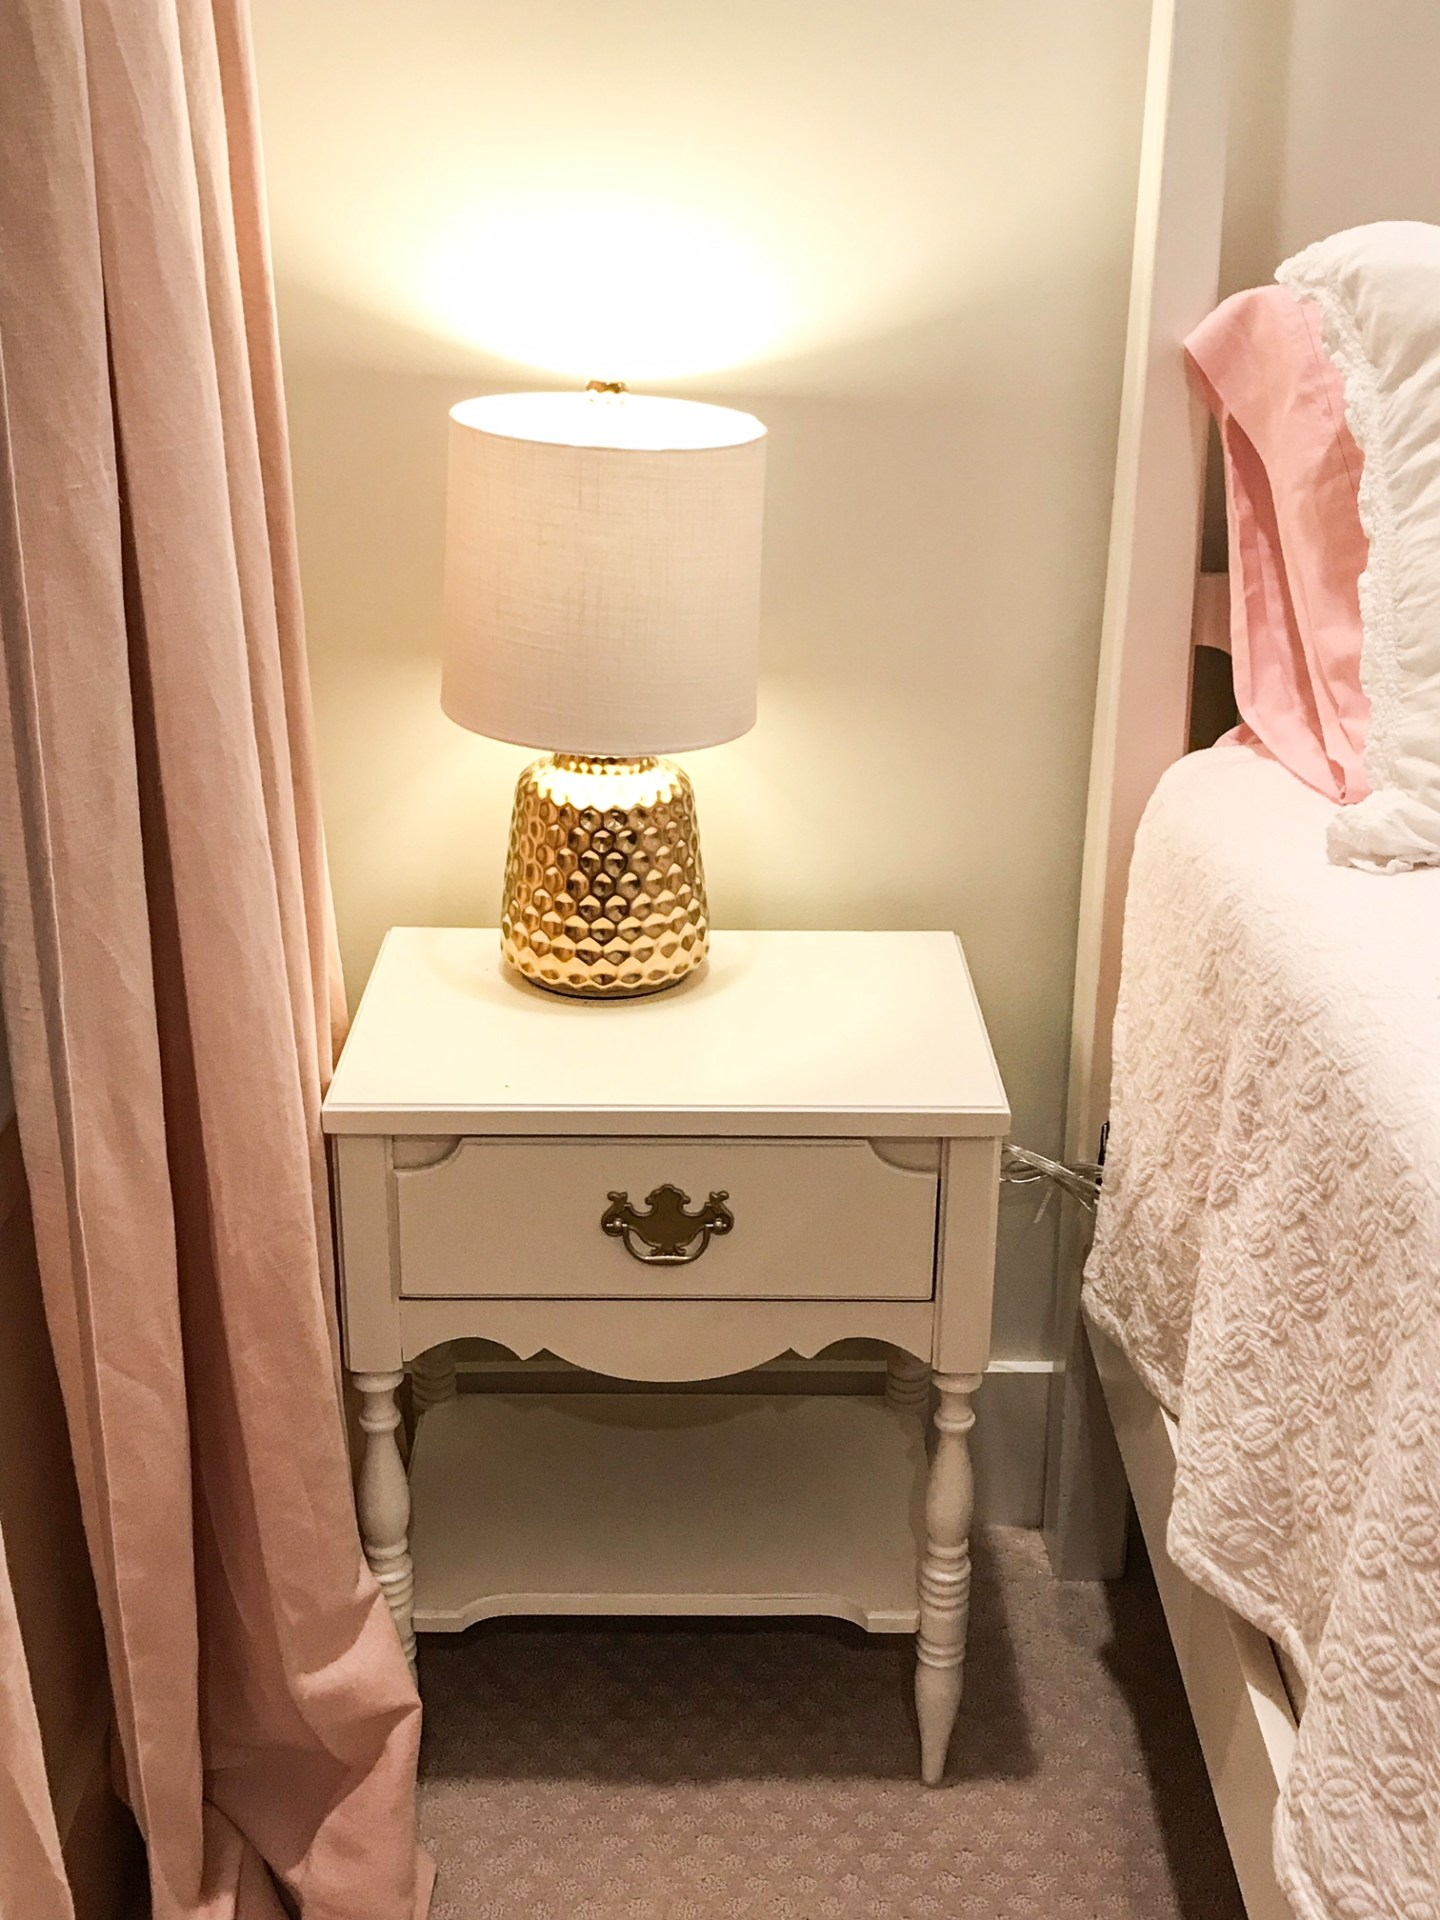 nightstand-gold-lamp-bedside-table